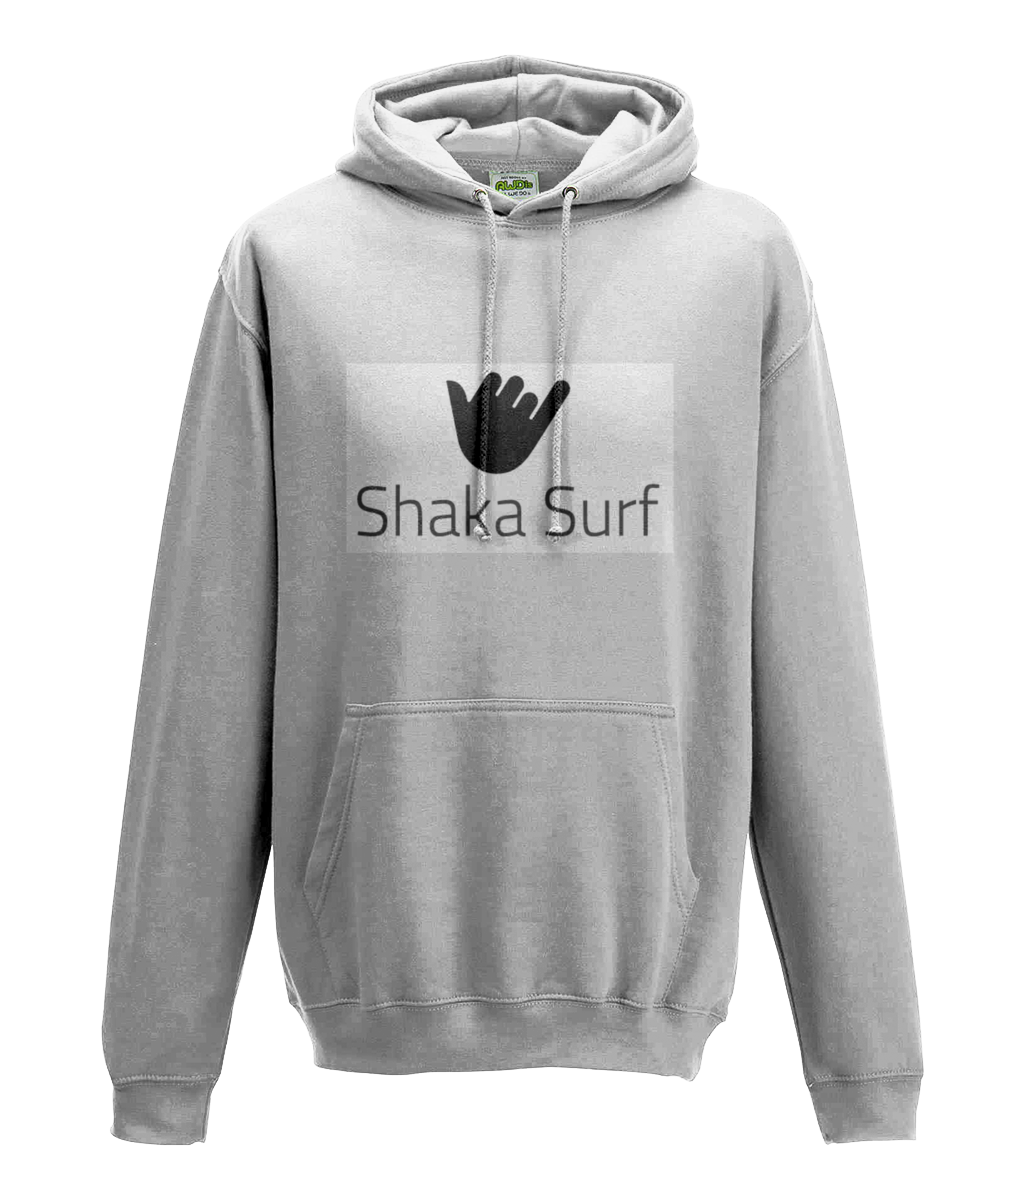 Shaka Surf College Hoodie - Ringspun Cotton - Grey - Suggested Products - [shop name]